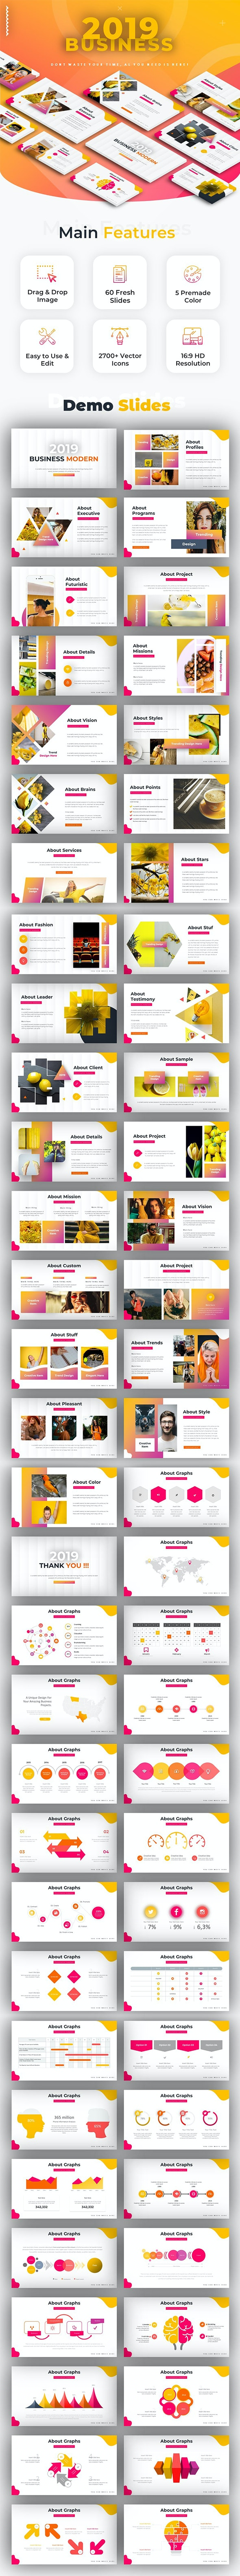 2019 Business Powerpoint - Business PowerPoint Templates